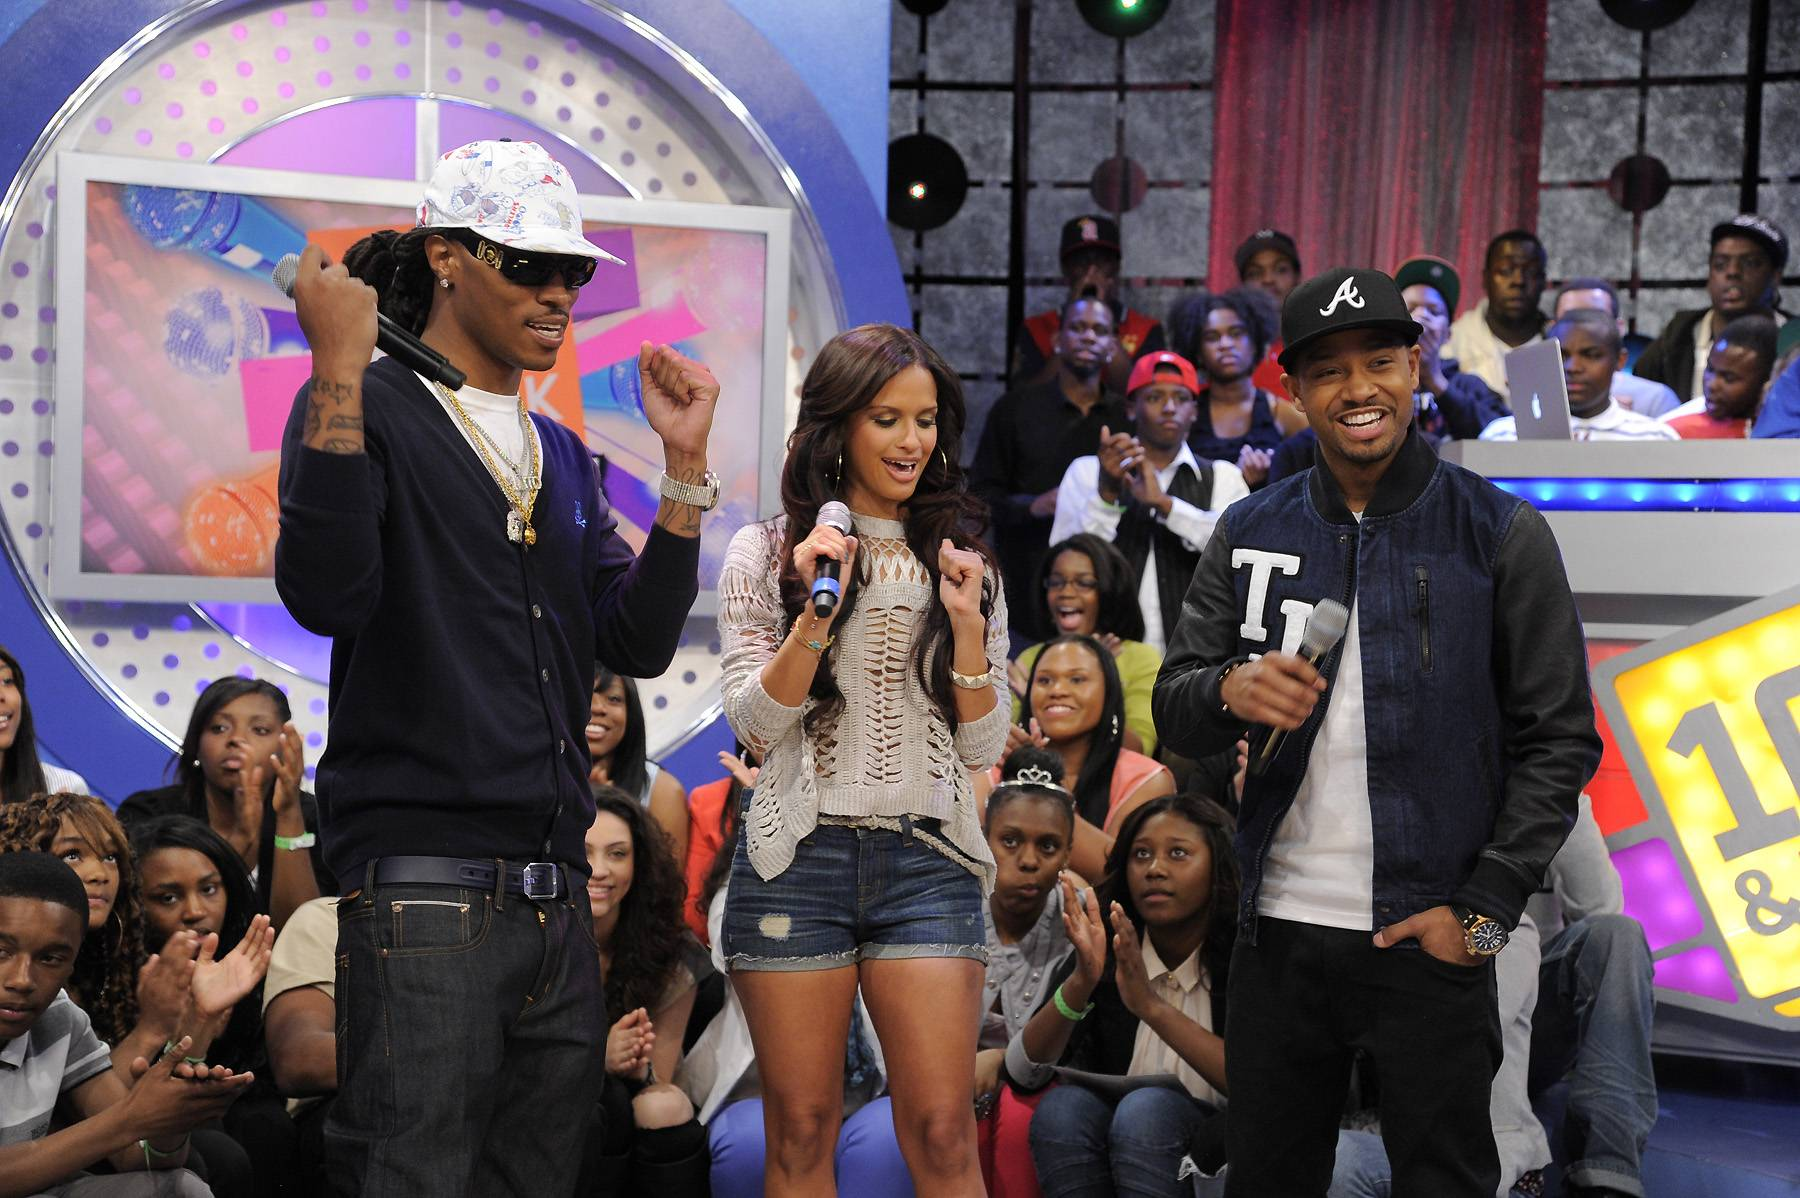 More Than Just Magic - Future and RD dance to Future's new video at 106 & Park, April 6, 2012. (photo: John Ricard / BET)